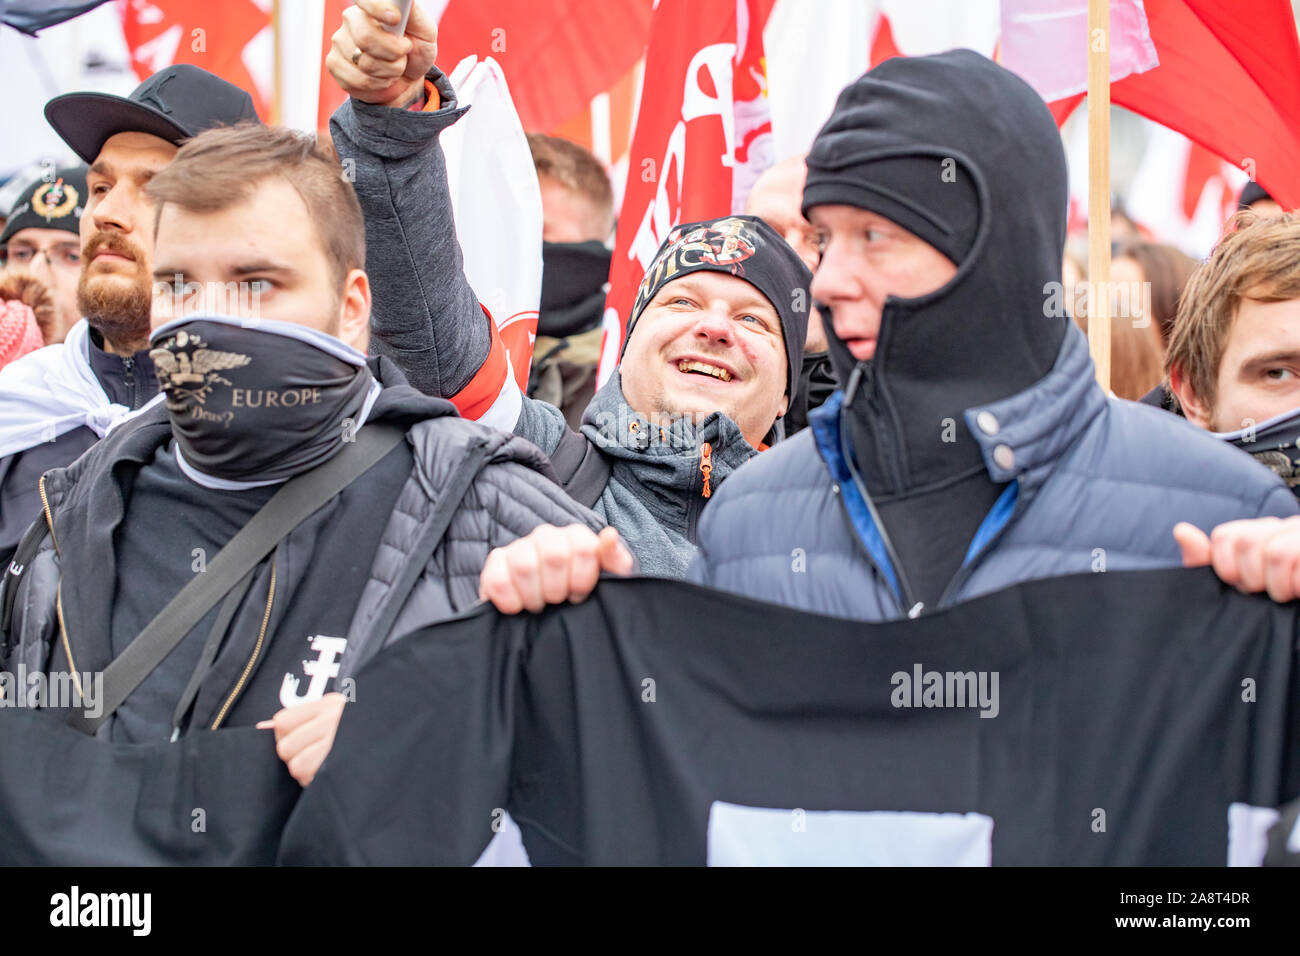 Warsaw / Poland - 11.11.2018: The Independece March. nationalists faces flags and symbols. National independence day, 100th anniversary. Stock Photo